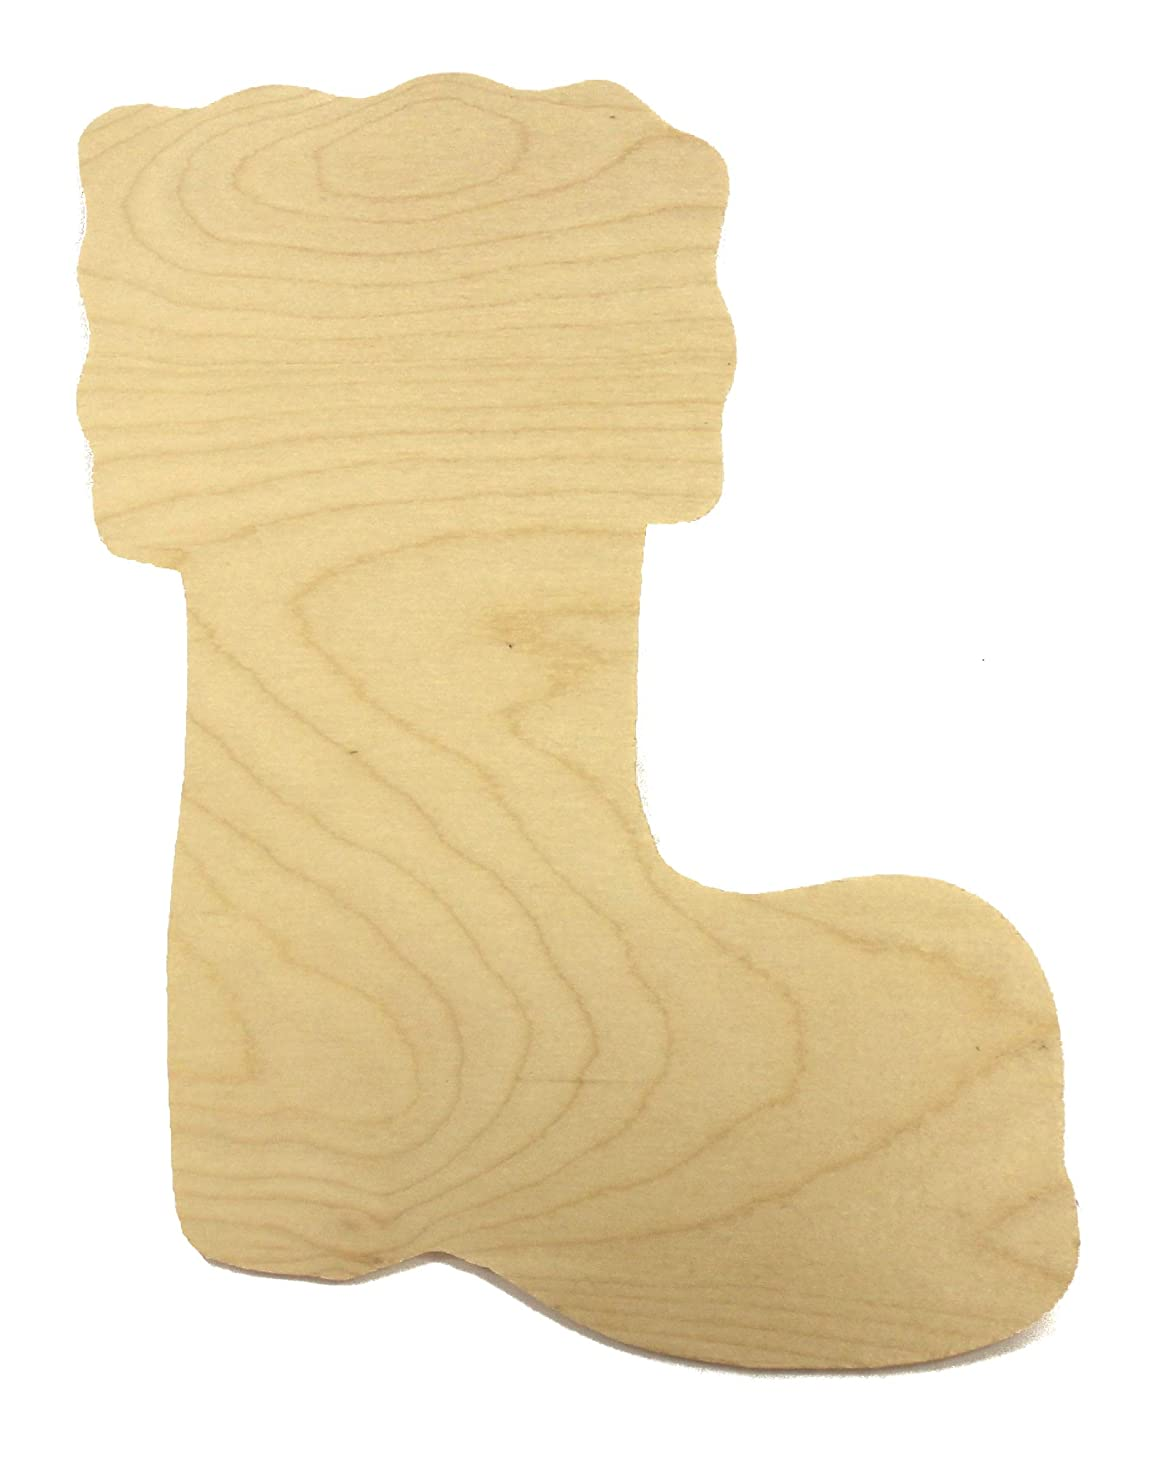 Wooden Christmas Stocking 12